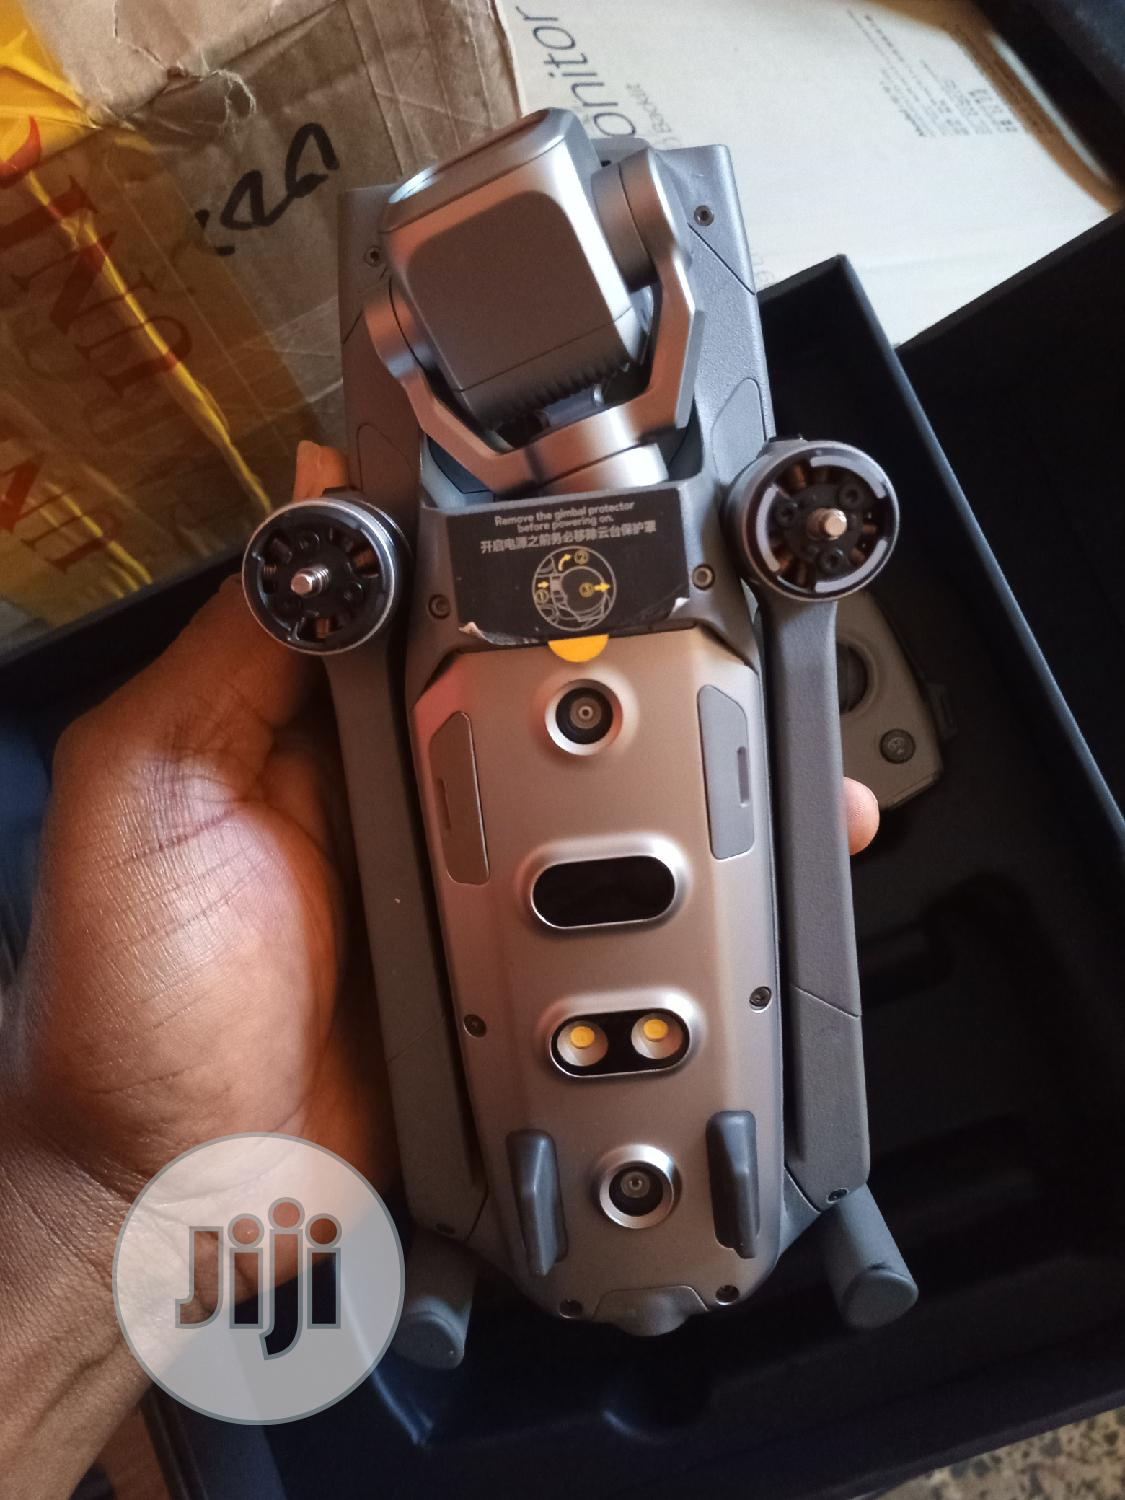 Used Dji Mavic 2 Pro With Hasselblad Camera Quadcopter Drone | Photo & Video Cameras for sale in Ikeja, Lagos State, Nigeria